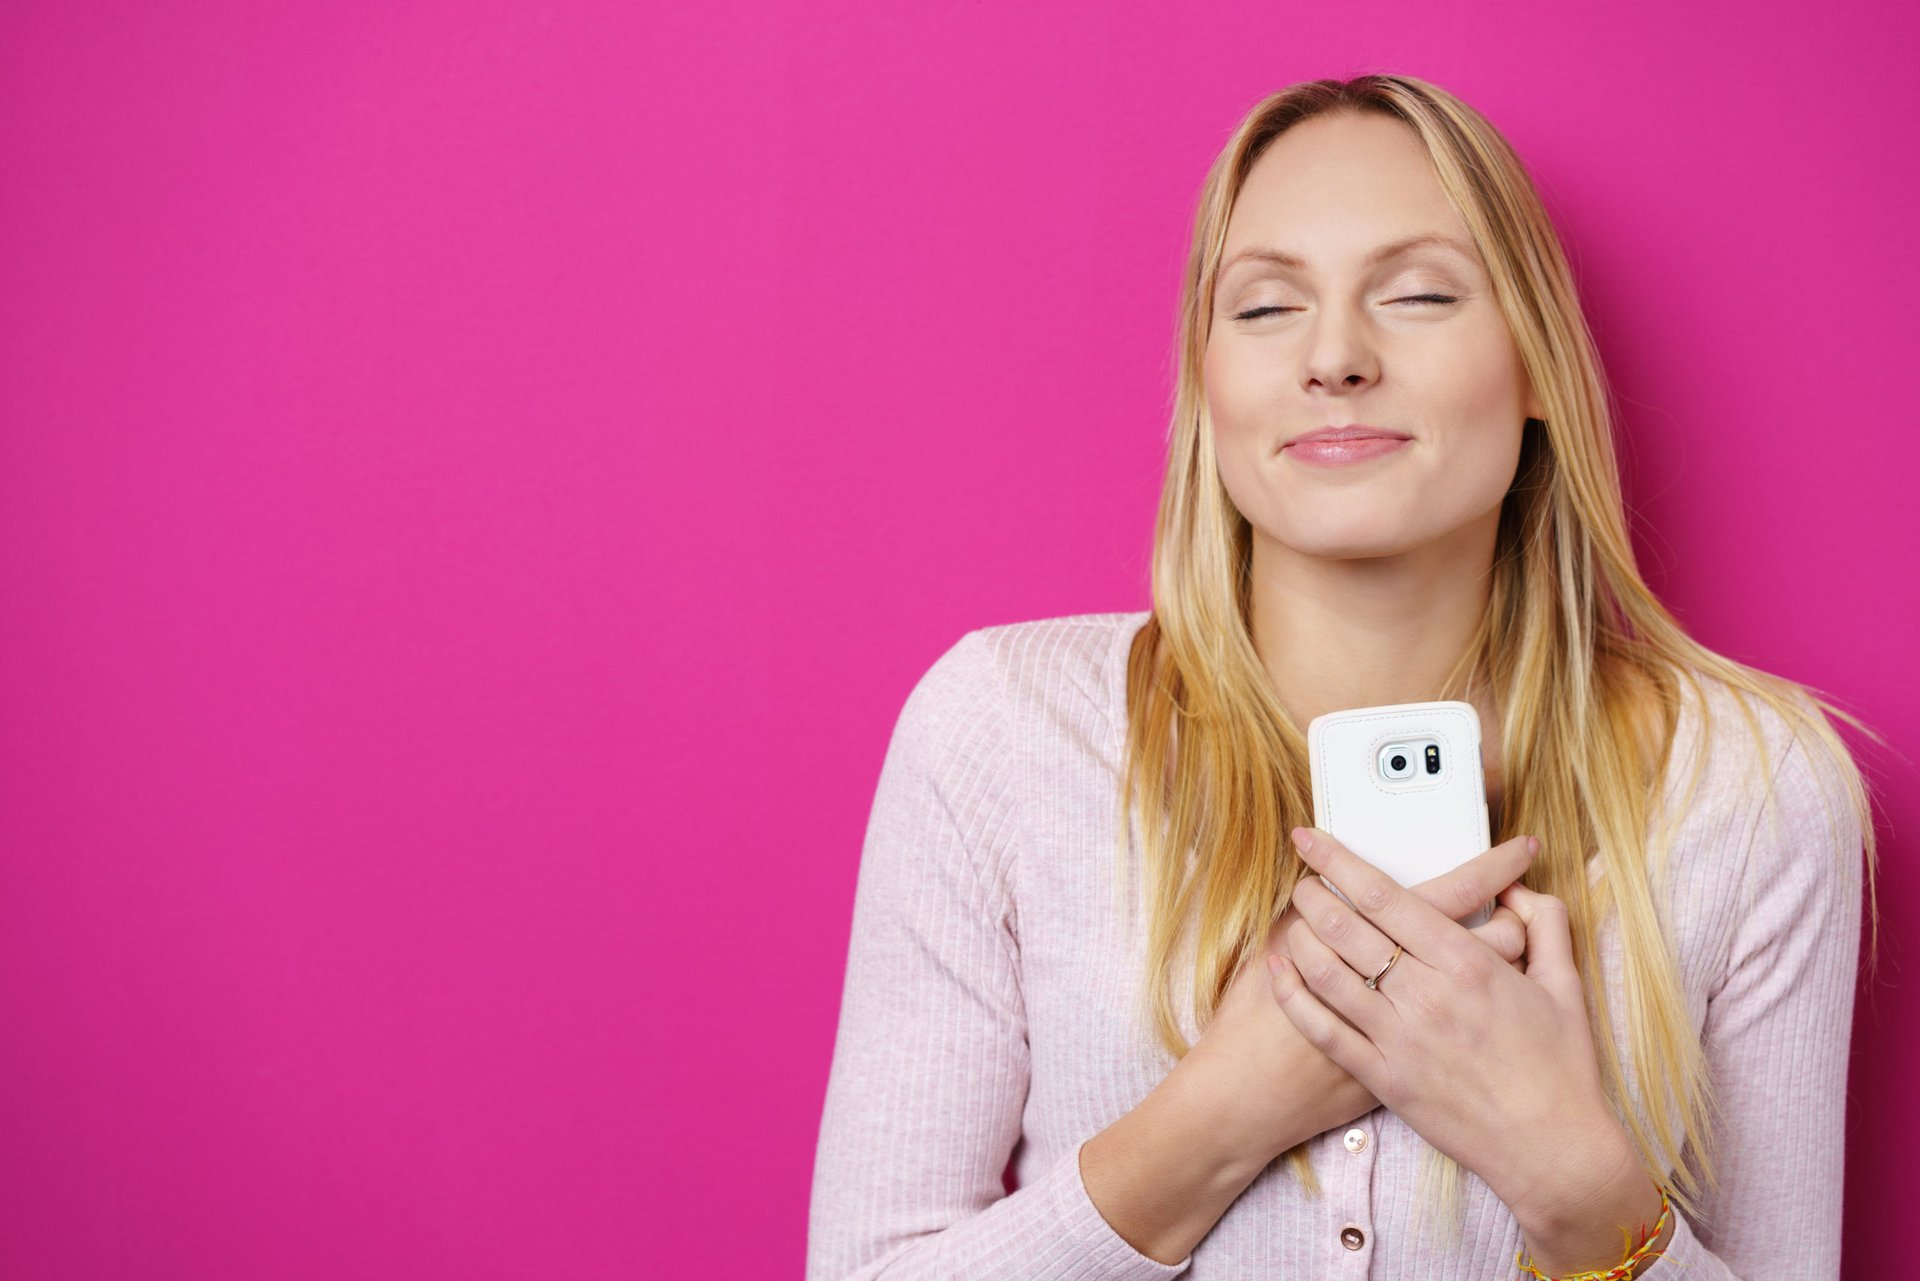 Happy and peaceful woman holding her phone